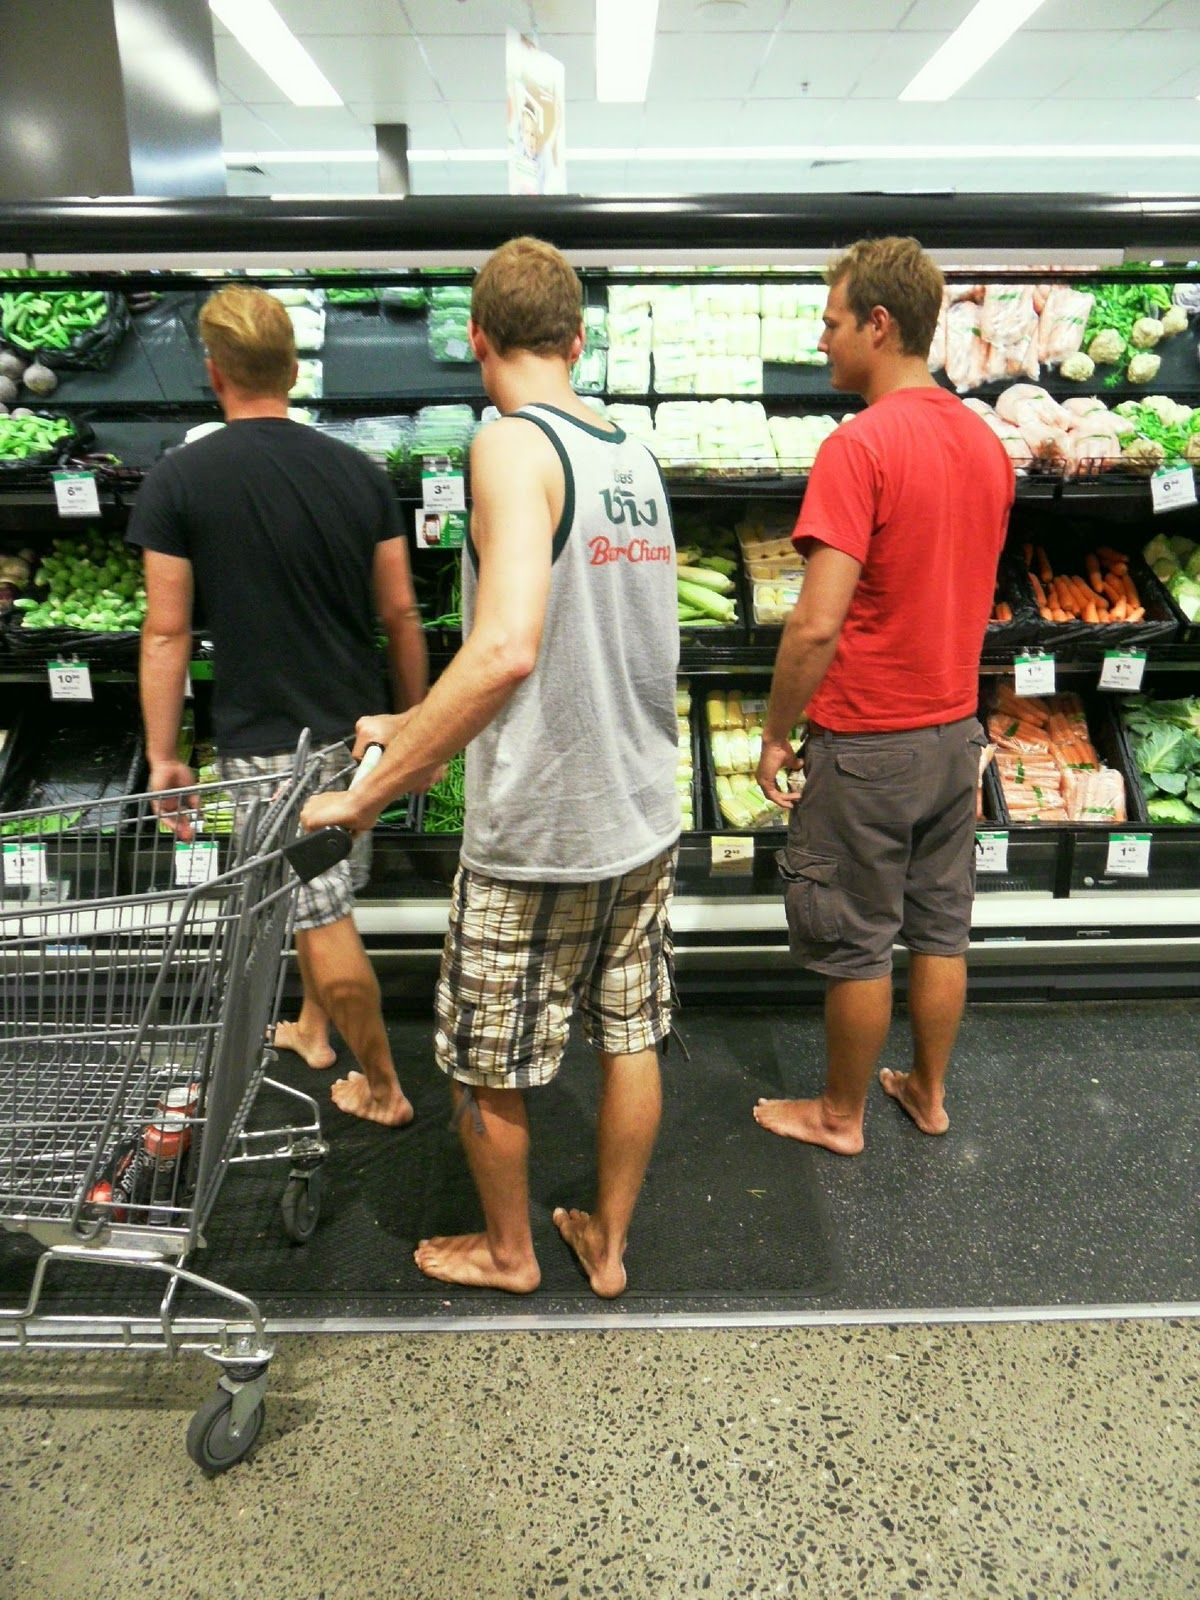 Man Shopping Barefoot